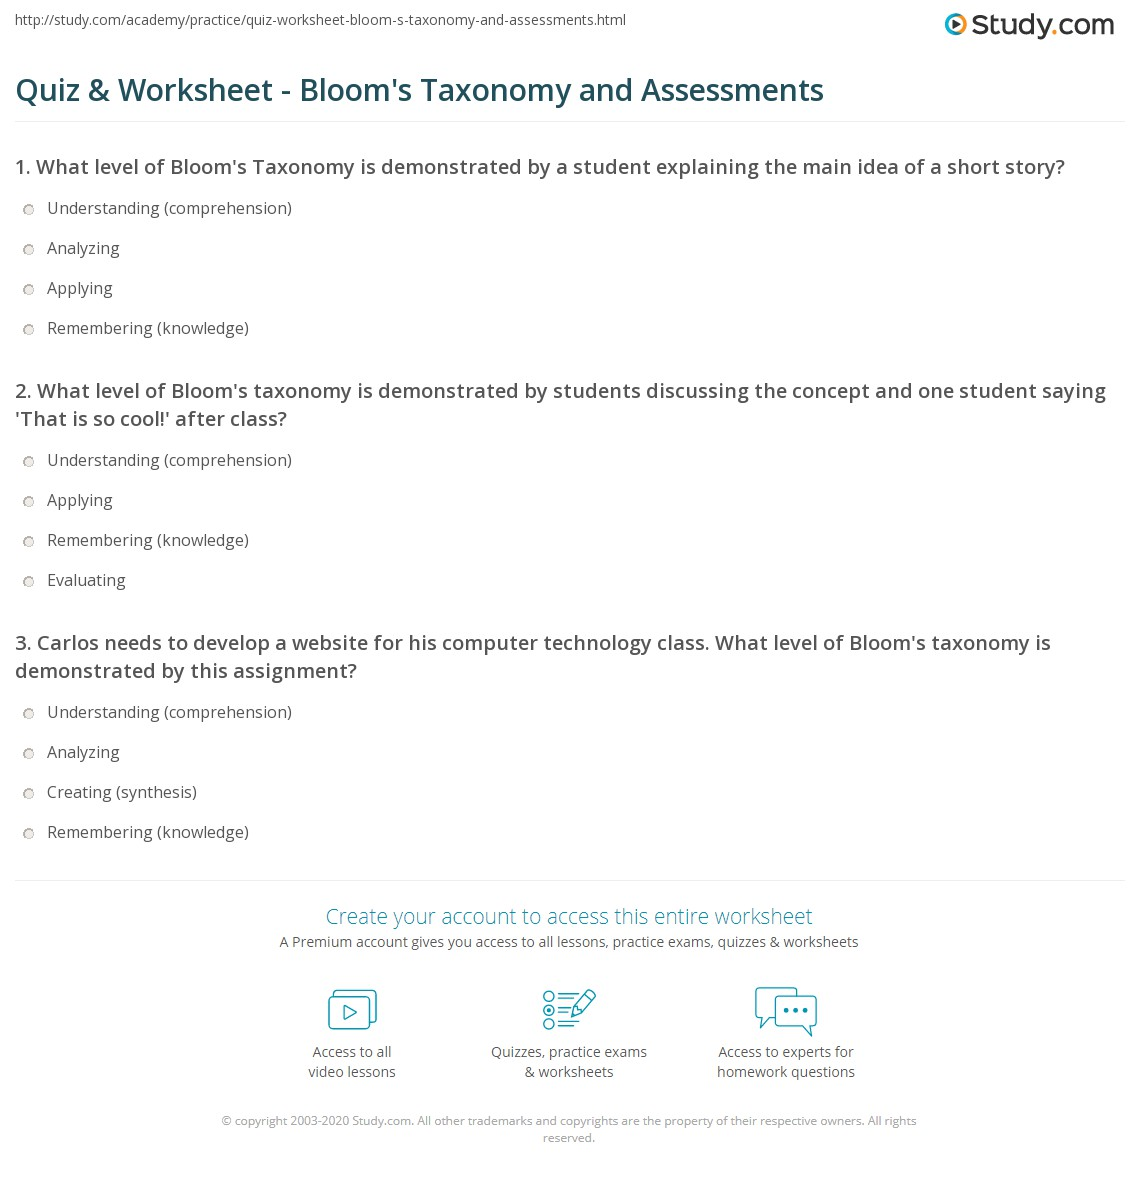 Quiz & Worksheet - Bloom's Taxonomy and Assessments | Study.com